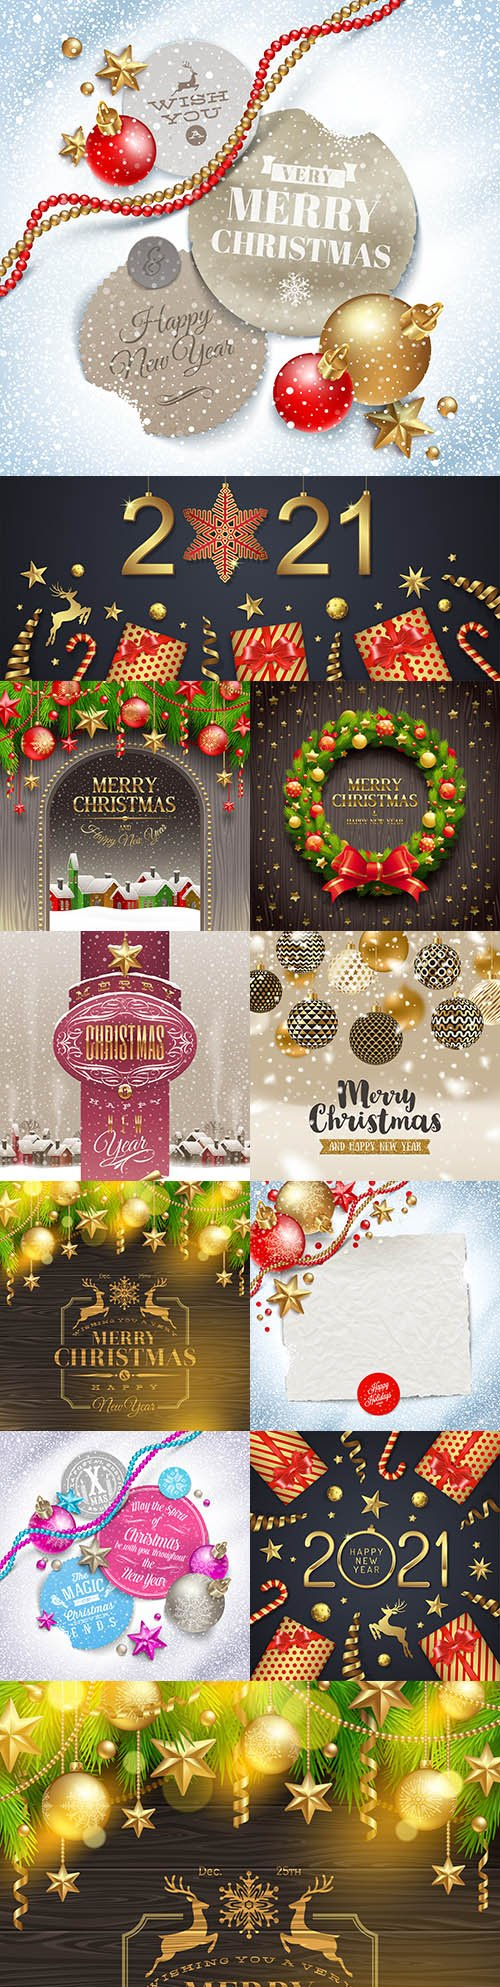 Christmas card decorative congratulations on New Year 2021